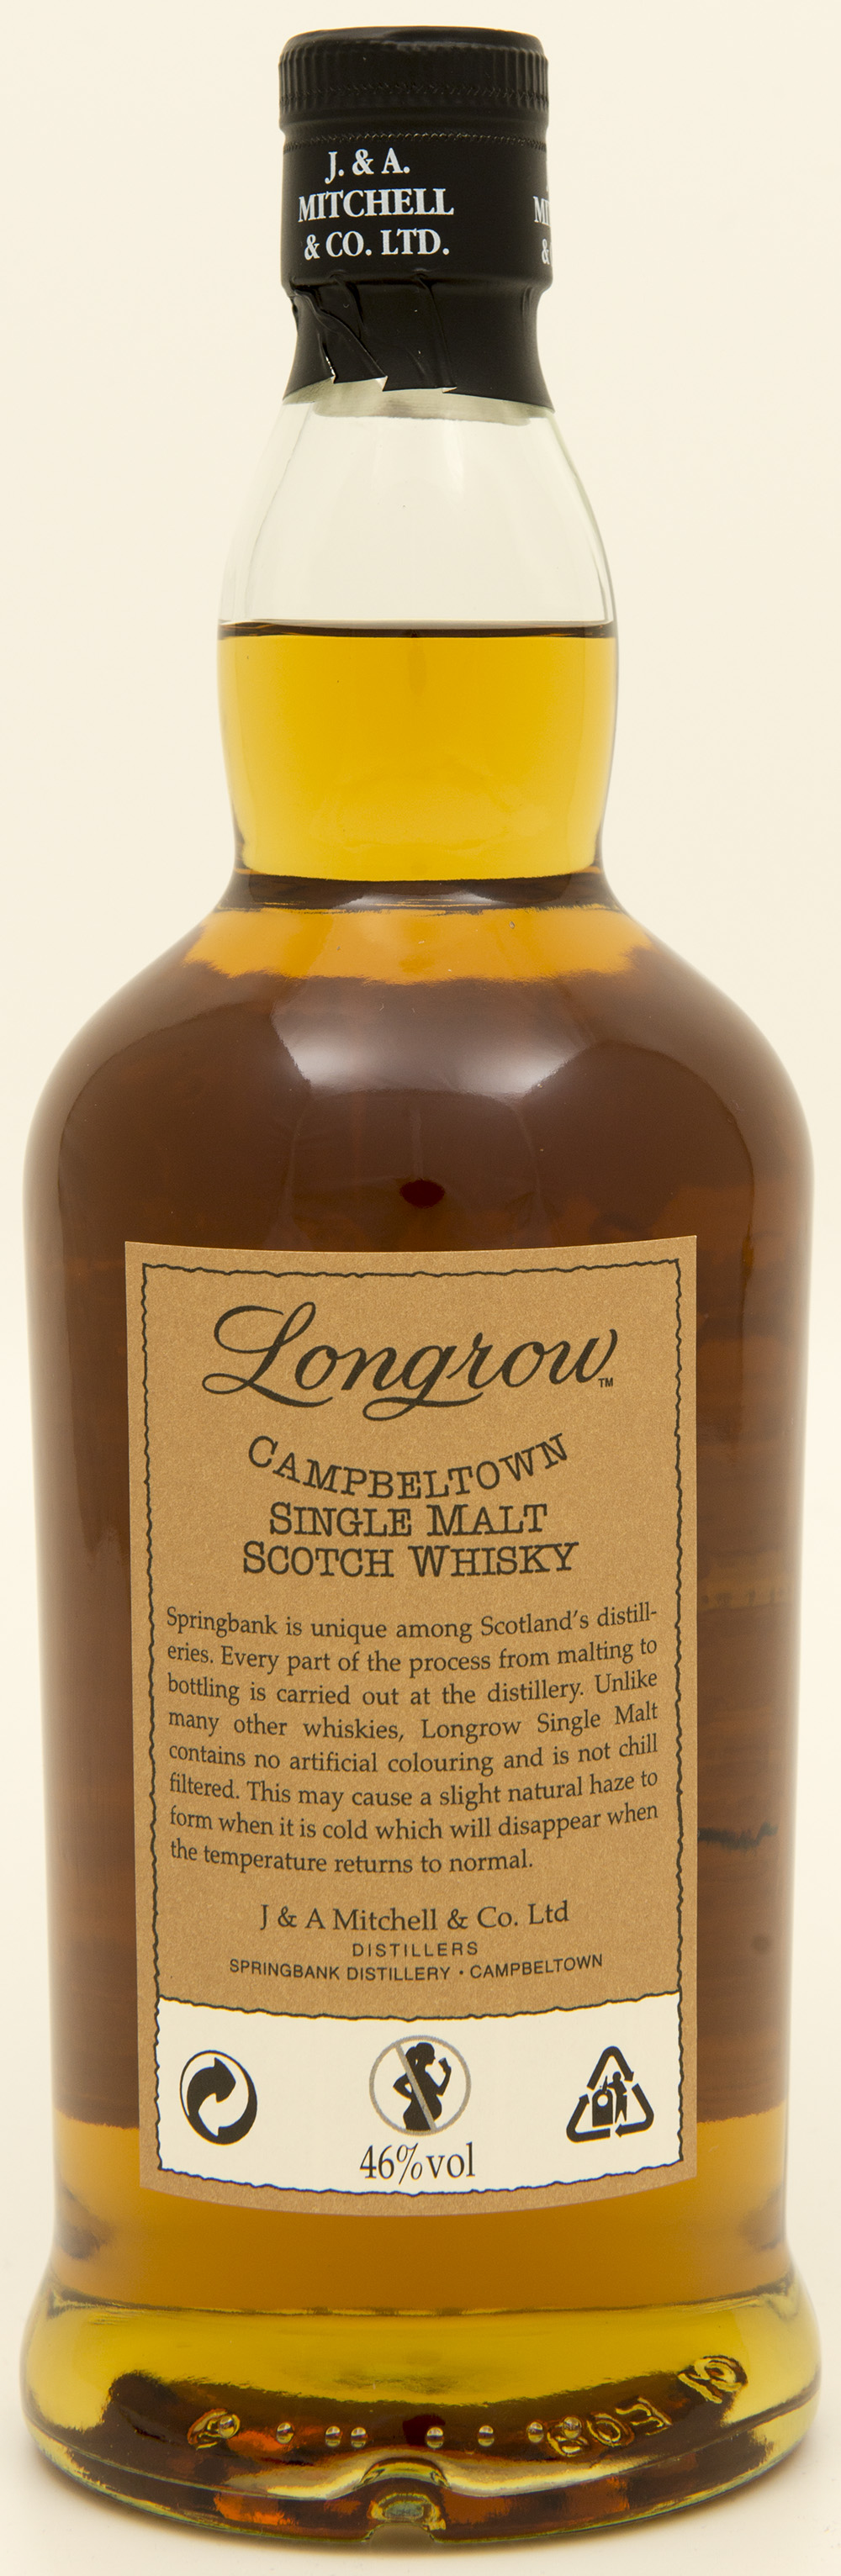 Billede: DSC_1313 - Longrow 18 - bottle back.jpg